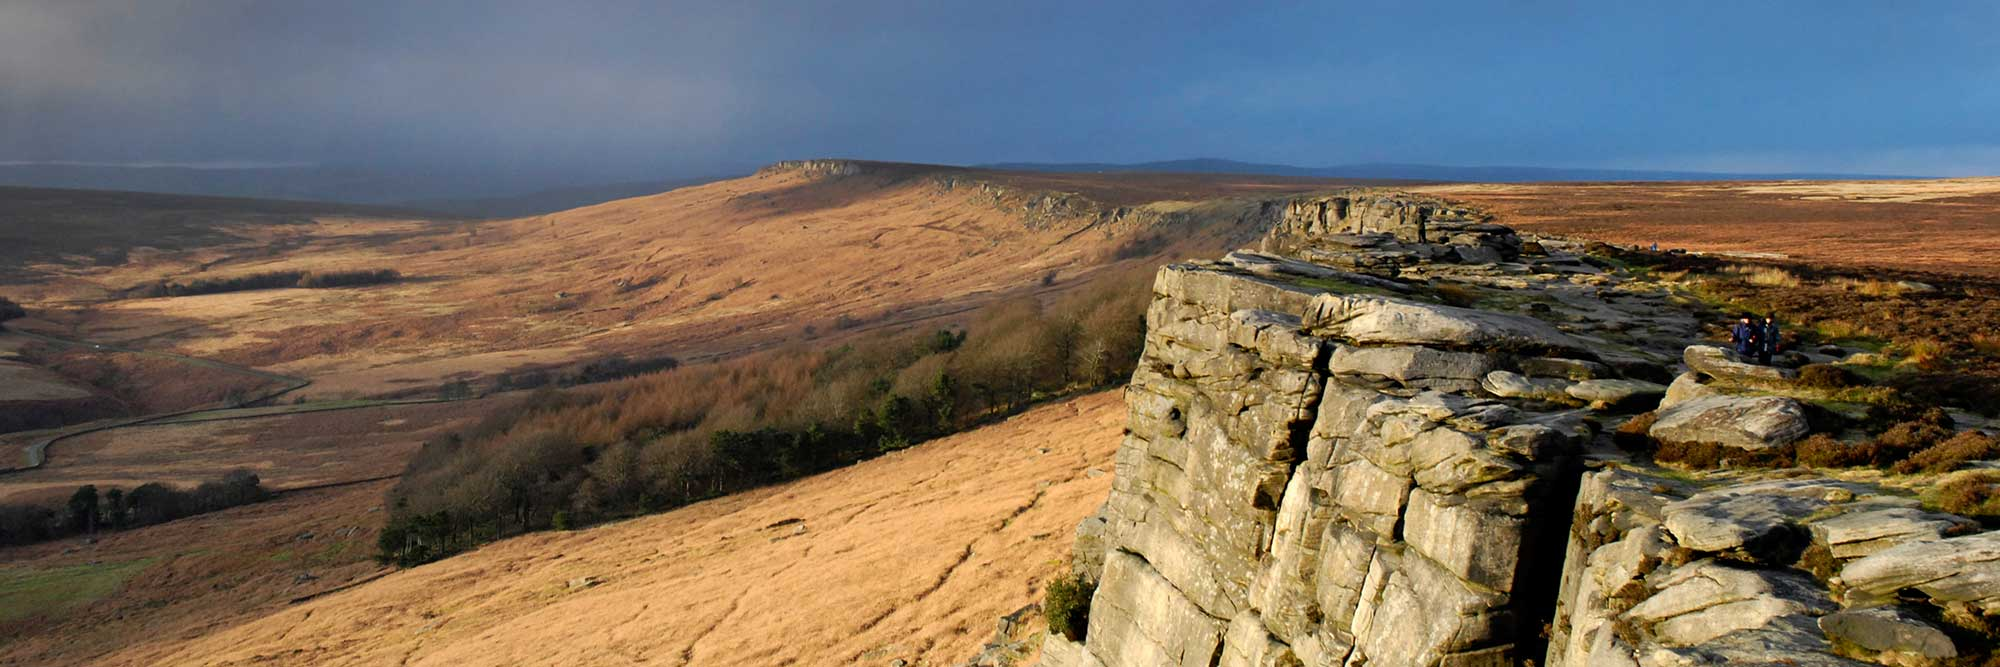 A long sheer cliff face, with moorland below